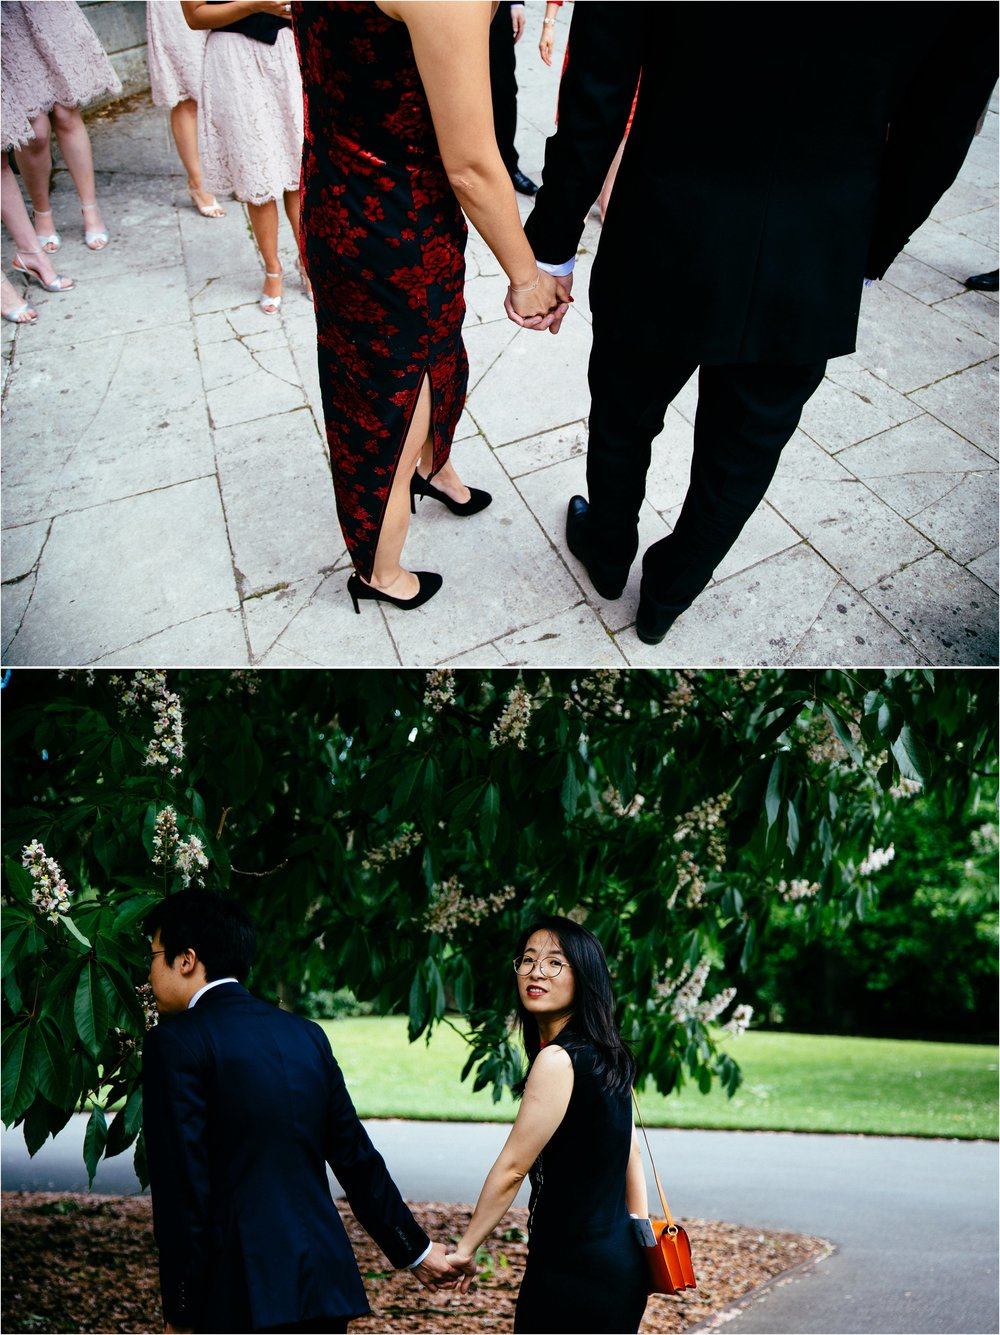 Kew Garden wedding photographer_0128.jpg